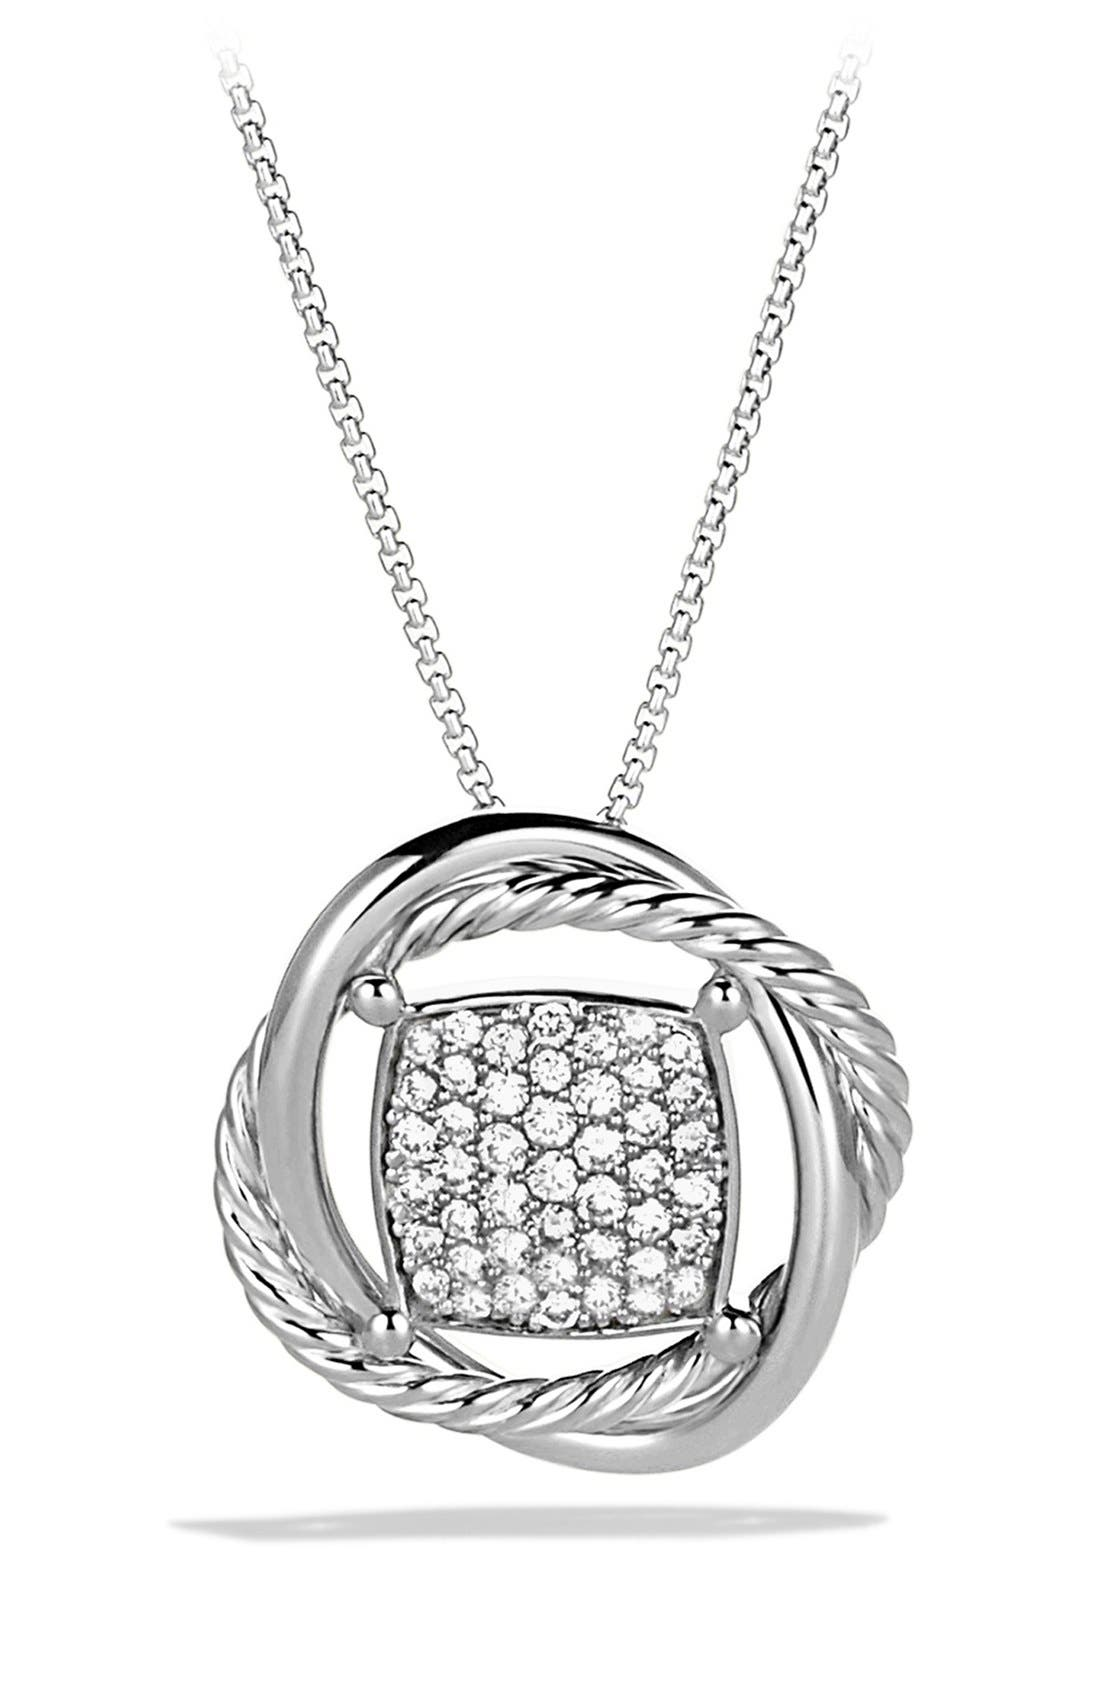 'Infinity' Pendant with Diamonds on Chain,                             Main thumbnail 1, color,                             DIAMOND